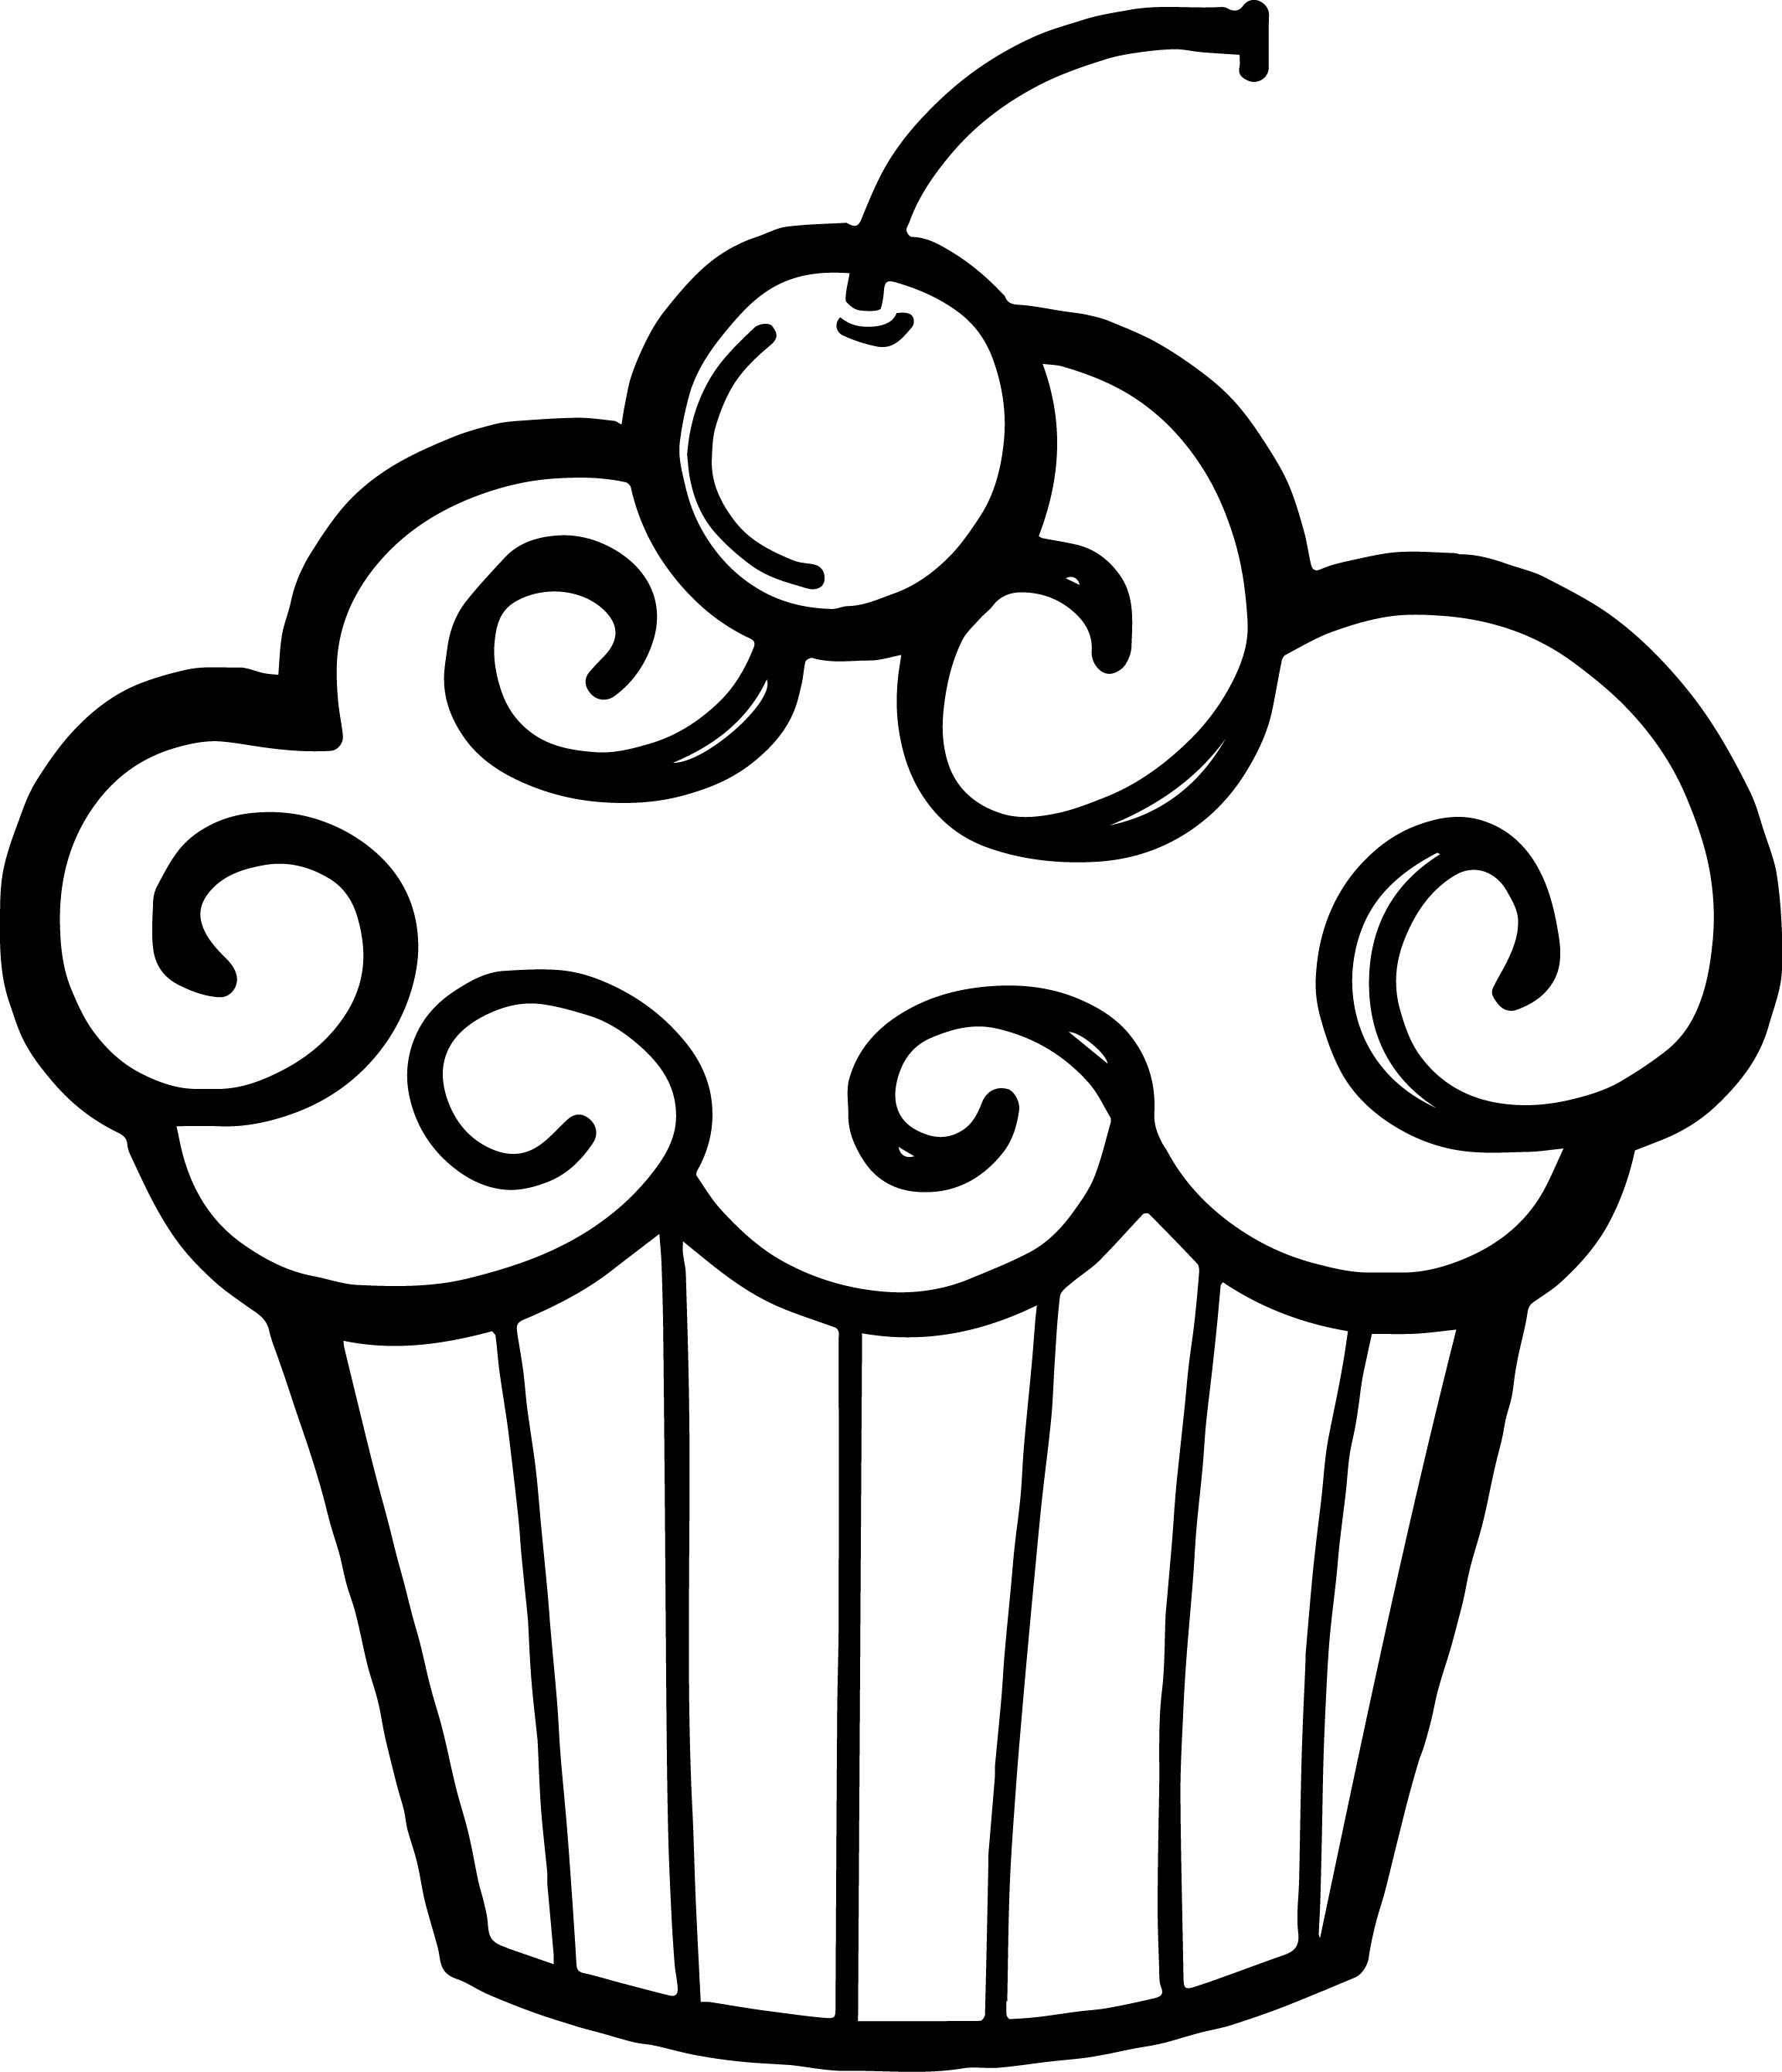 Outline Cupcake Clipart.